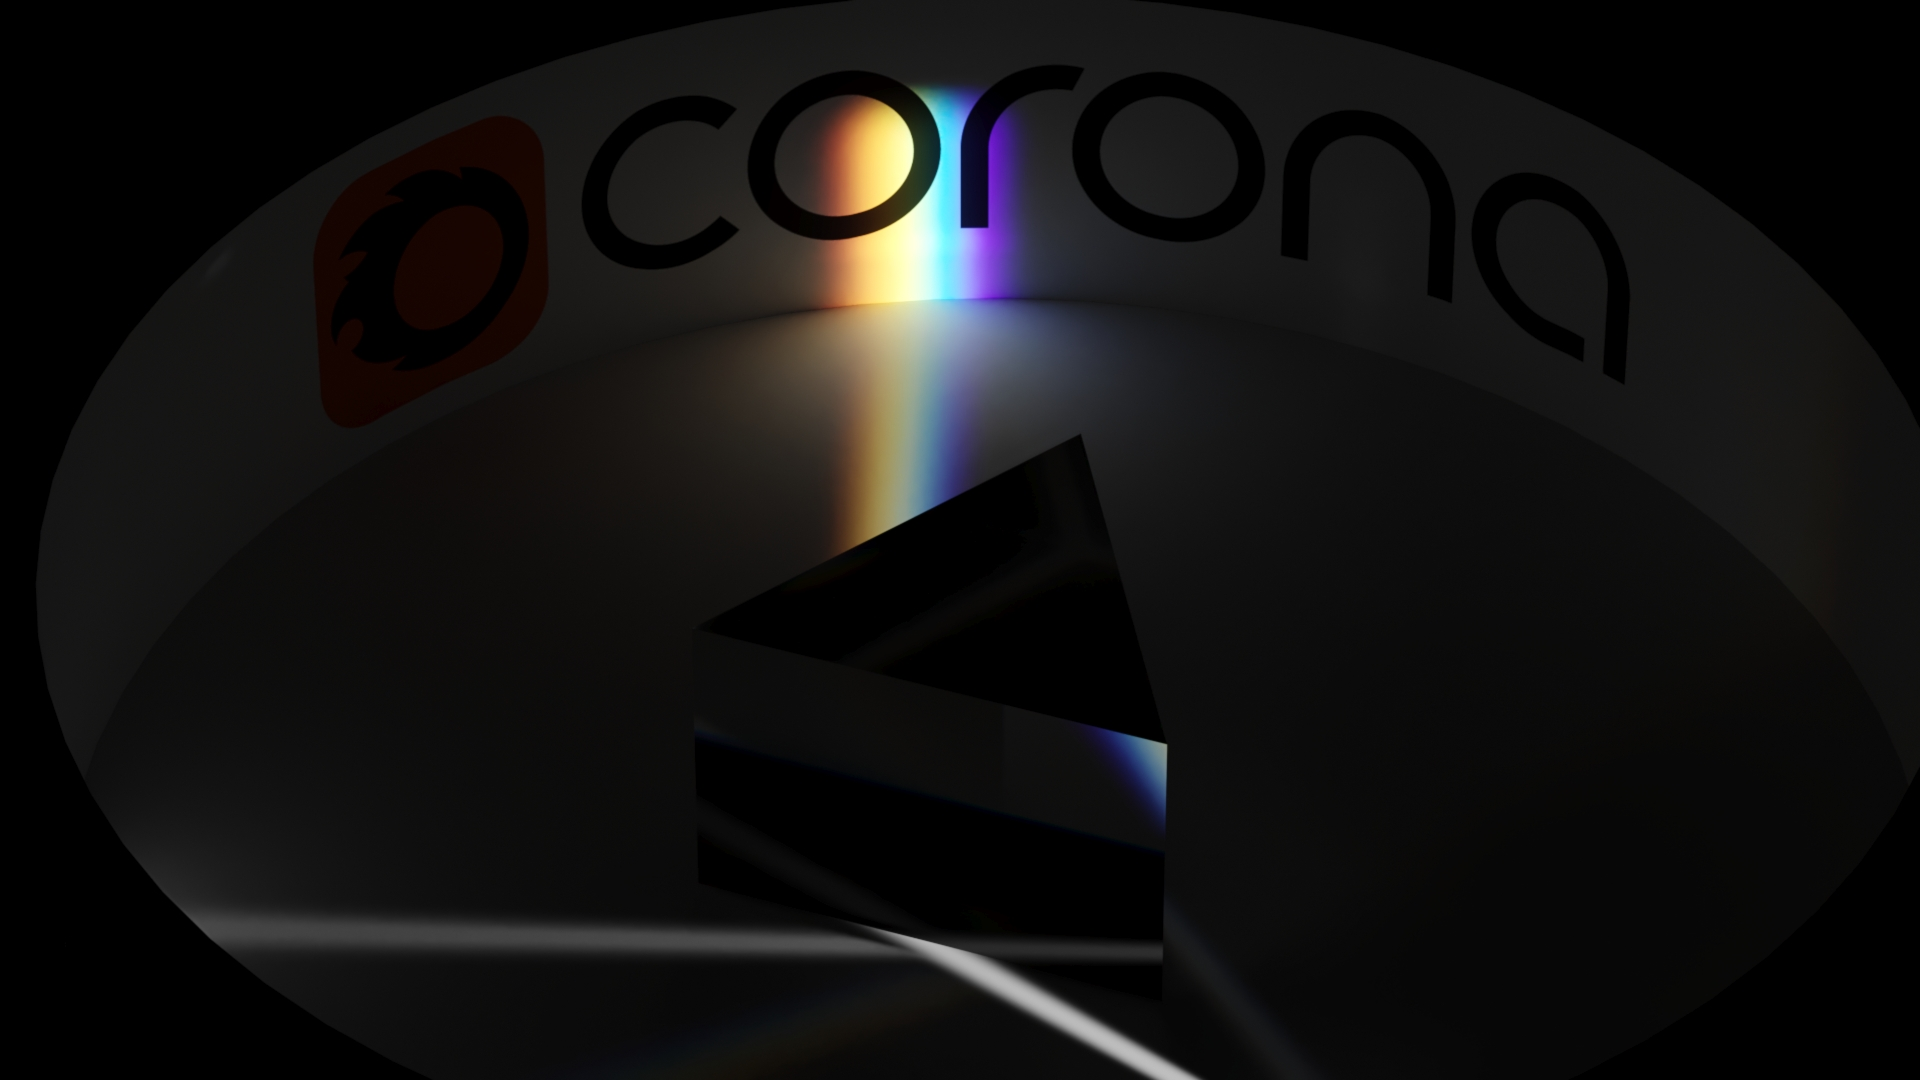 Corona Renderer 4 for 3ds Max Released! | Corona Renderer